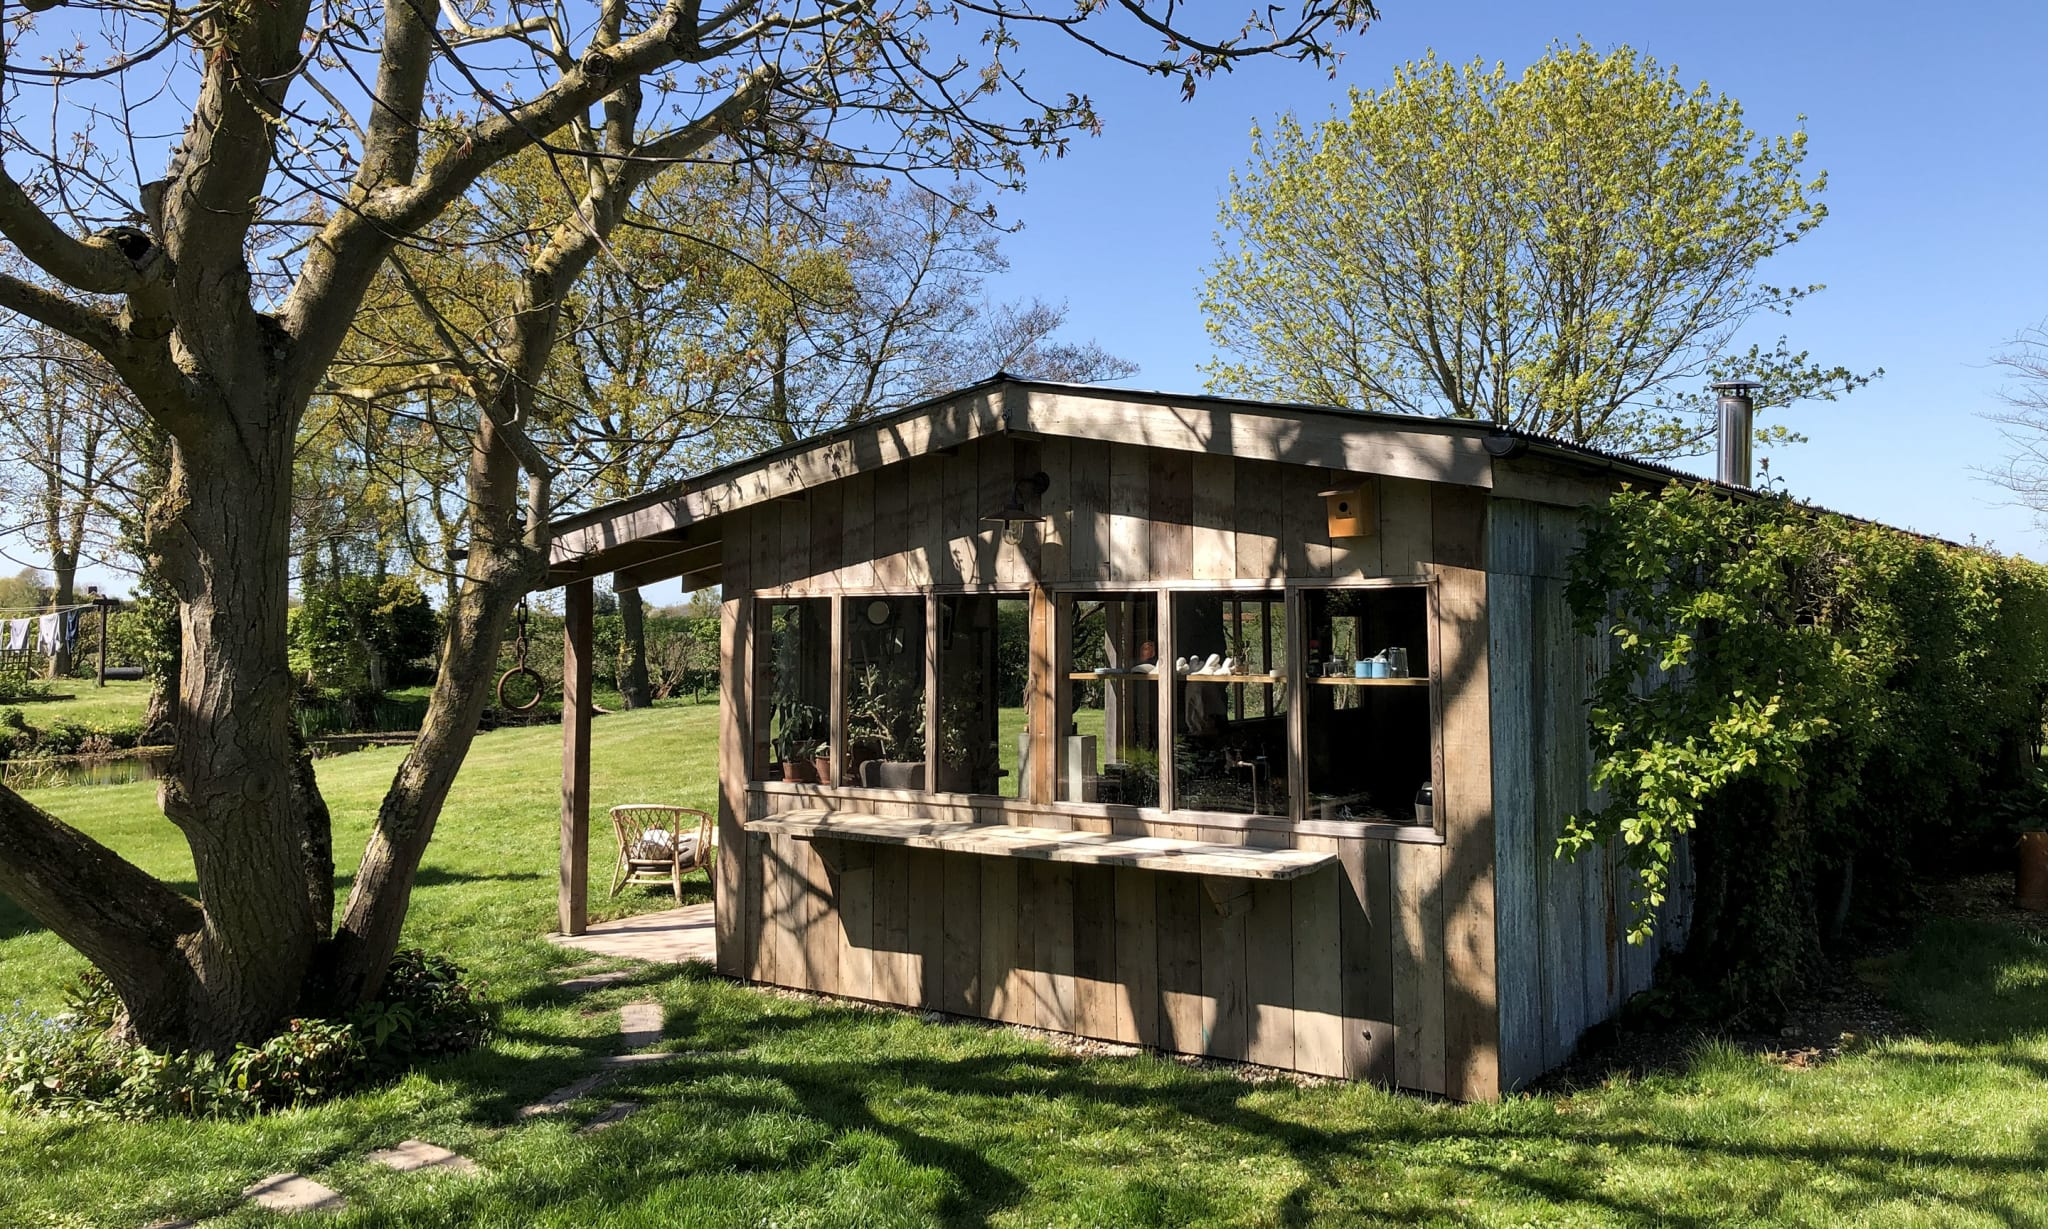 The exterior of a wooden shed-like building in a garden with trees.